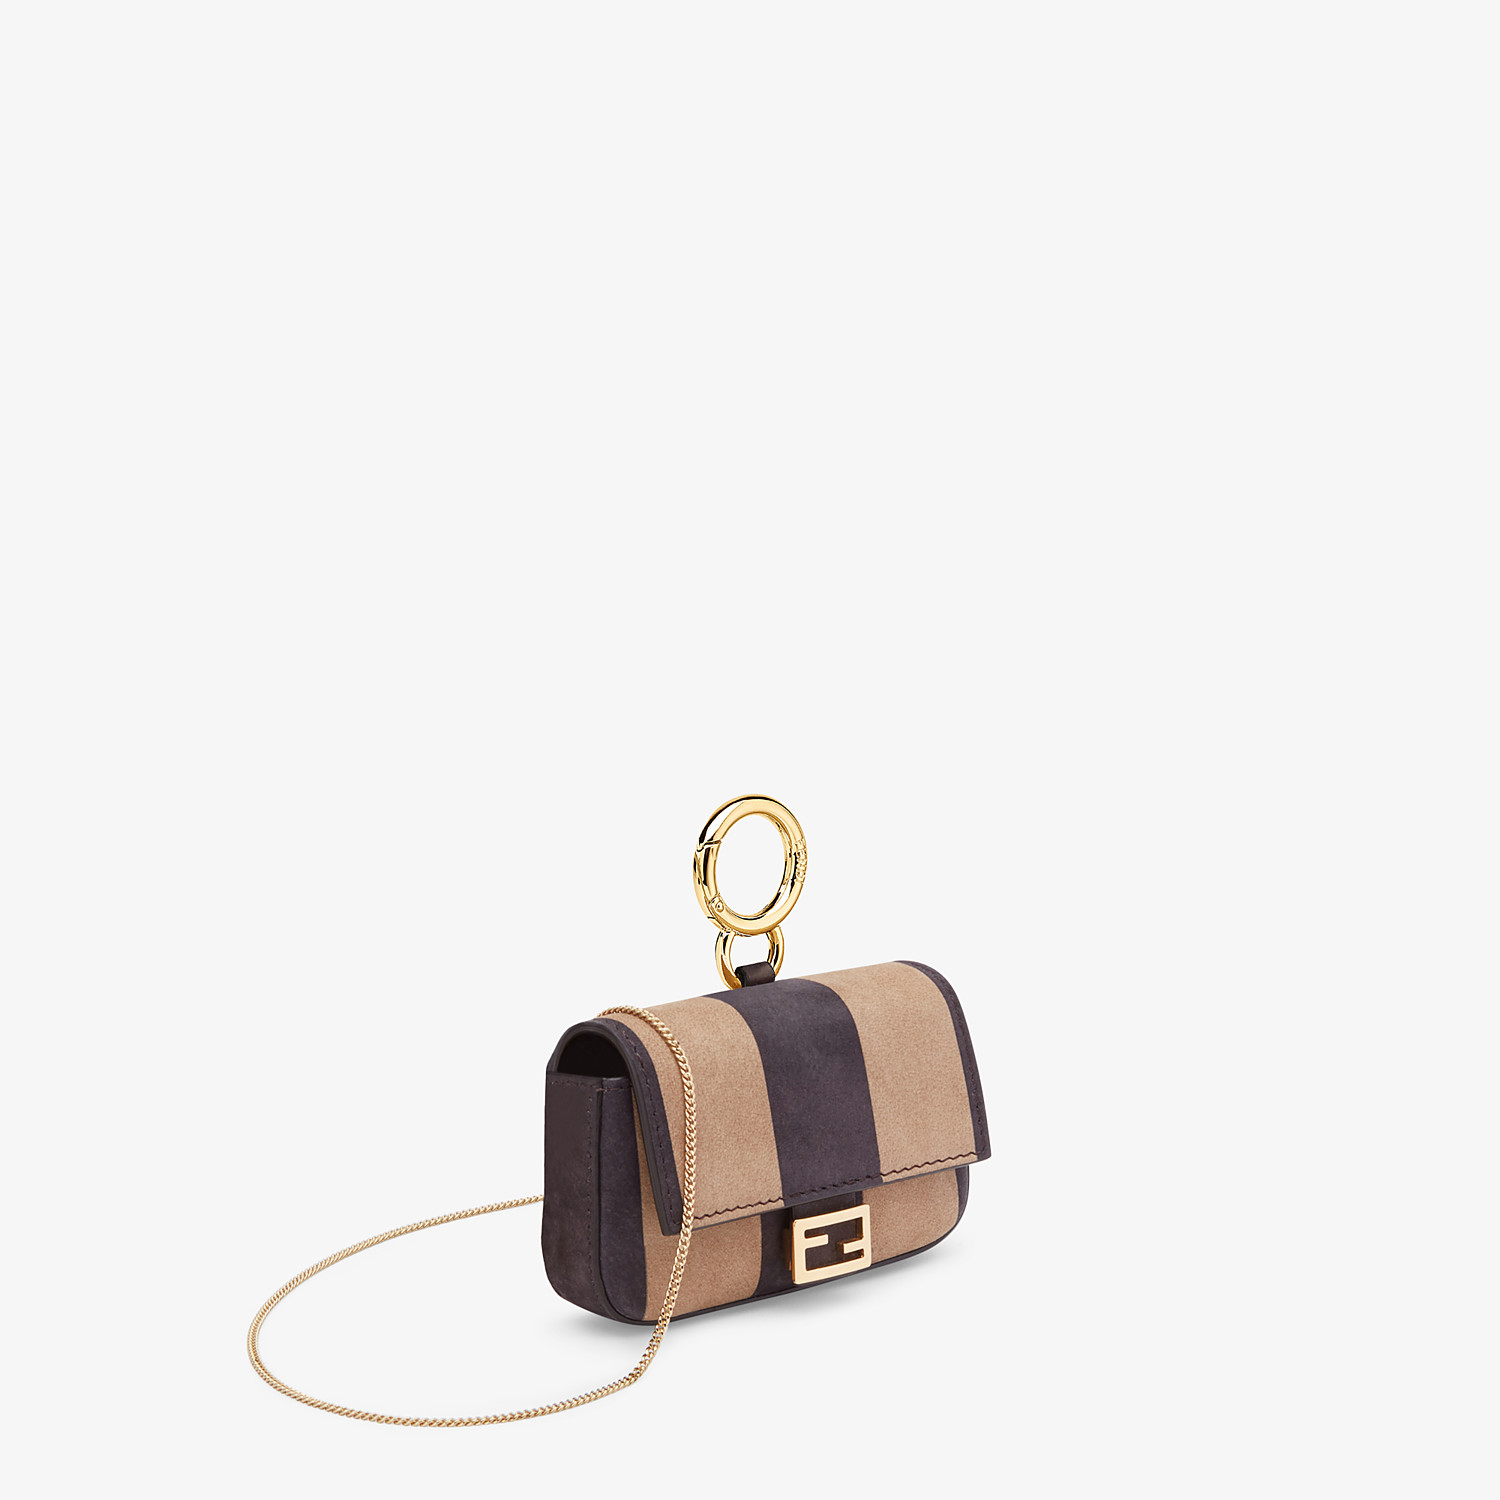 FENDI NANO BAGUETTE - Charm in brown nubuck leather - view 2 detail